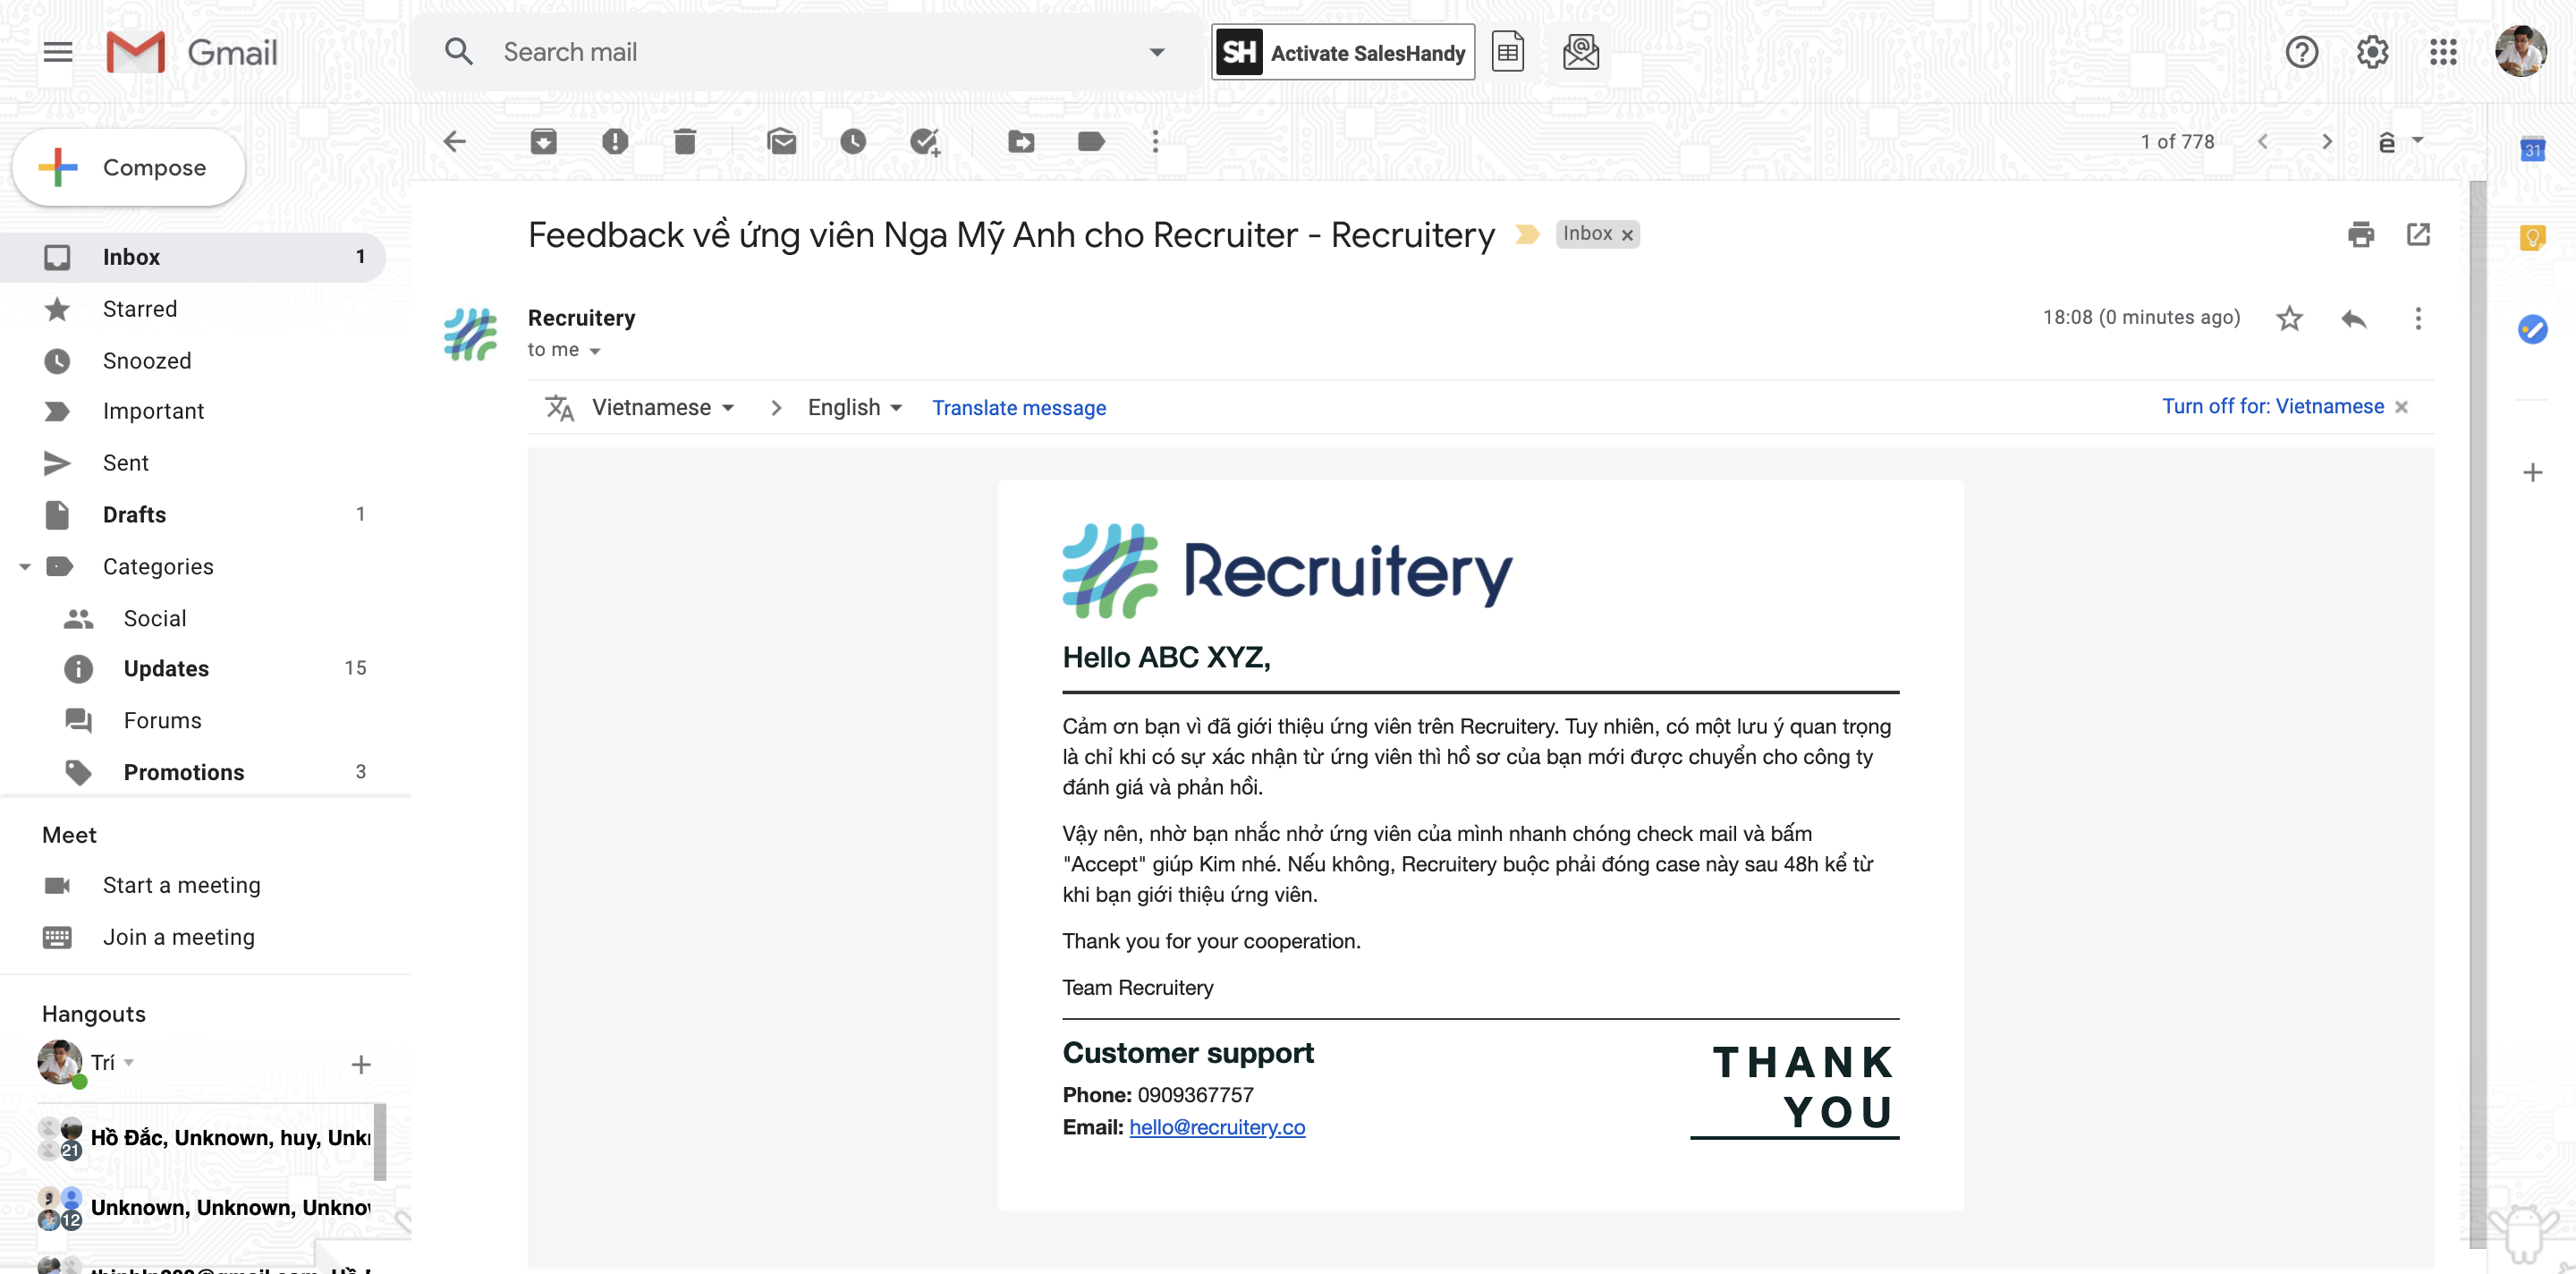 Email hunter - Recruitery